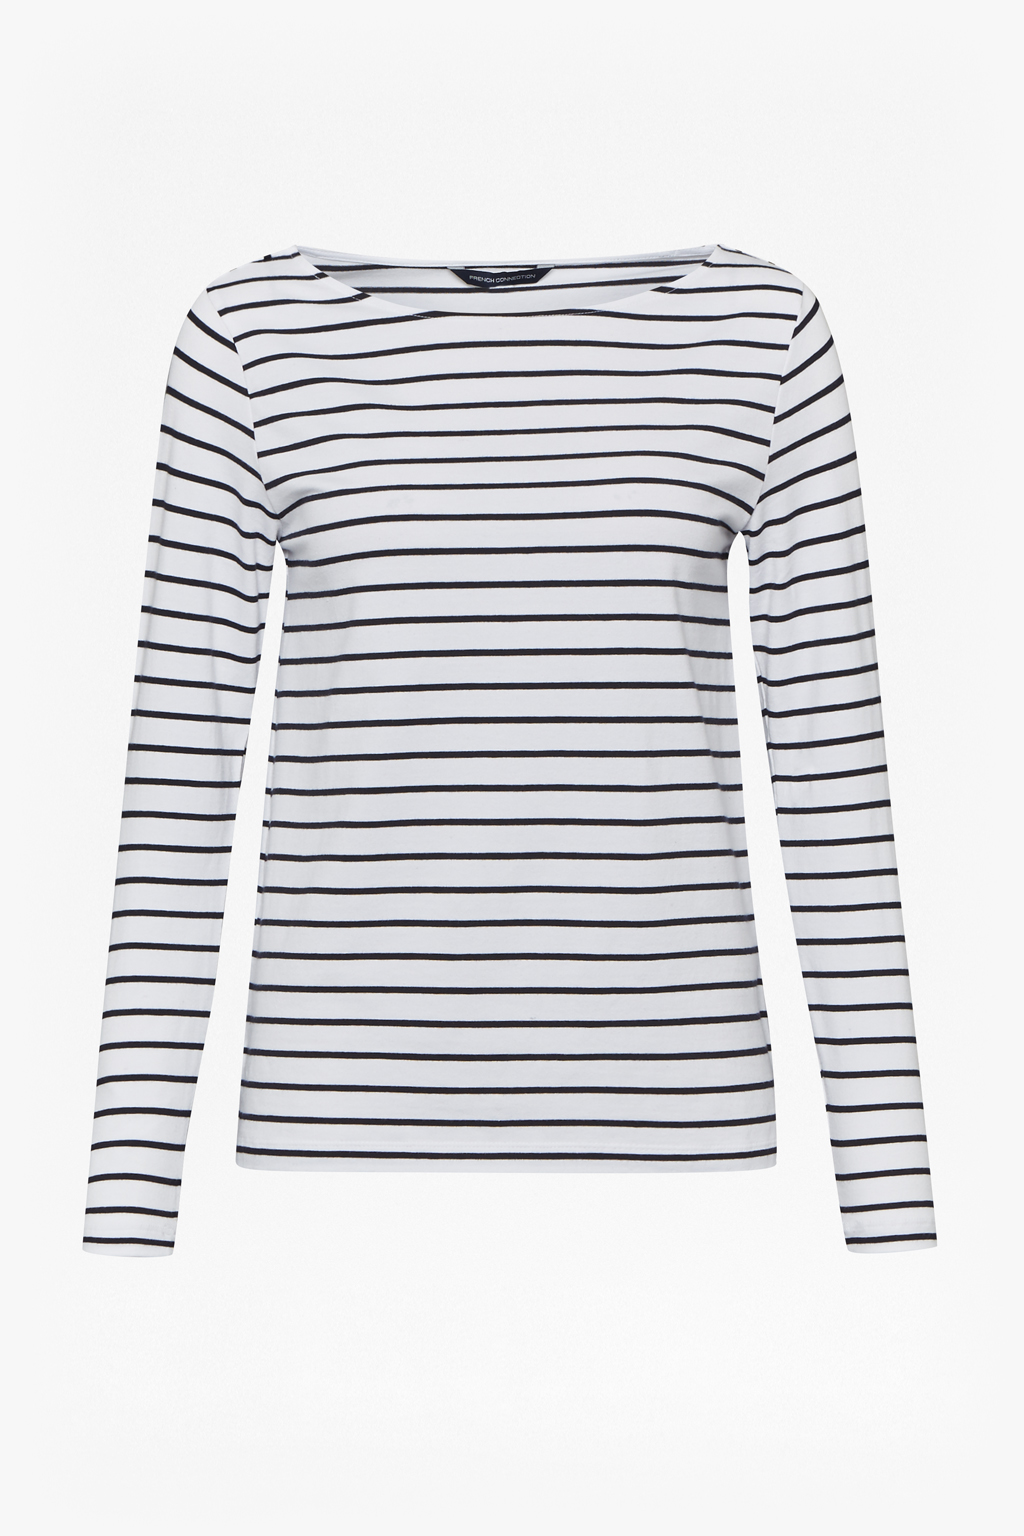 French Connection Tim Tim Stripe 3/4 Length Sleeve Top Cheap Sale Explore Under 70 Dollars Authentic diAS1g